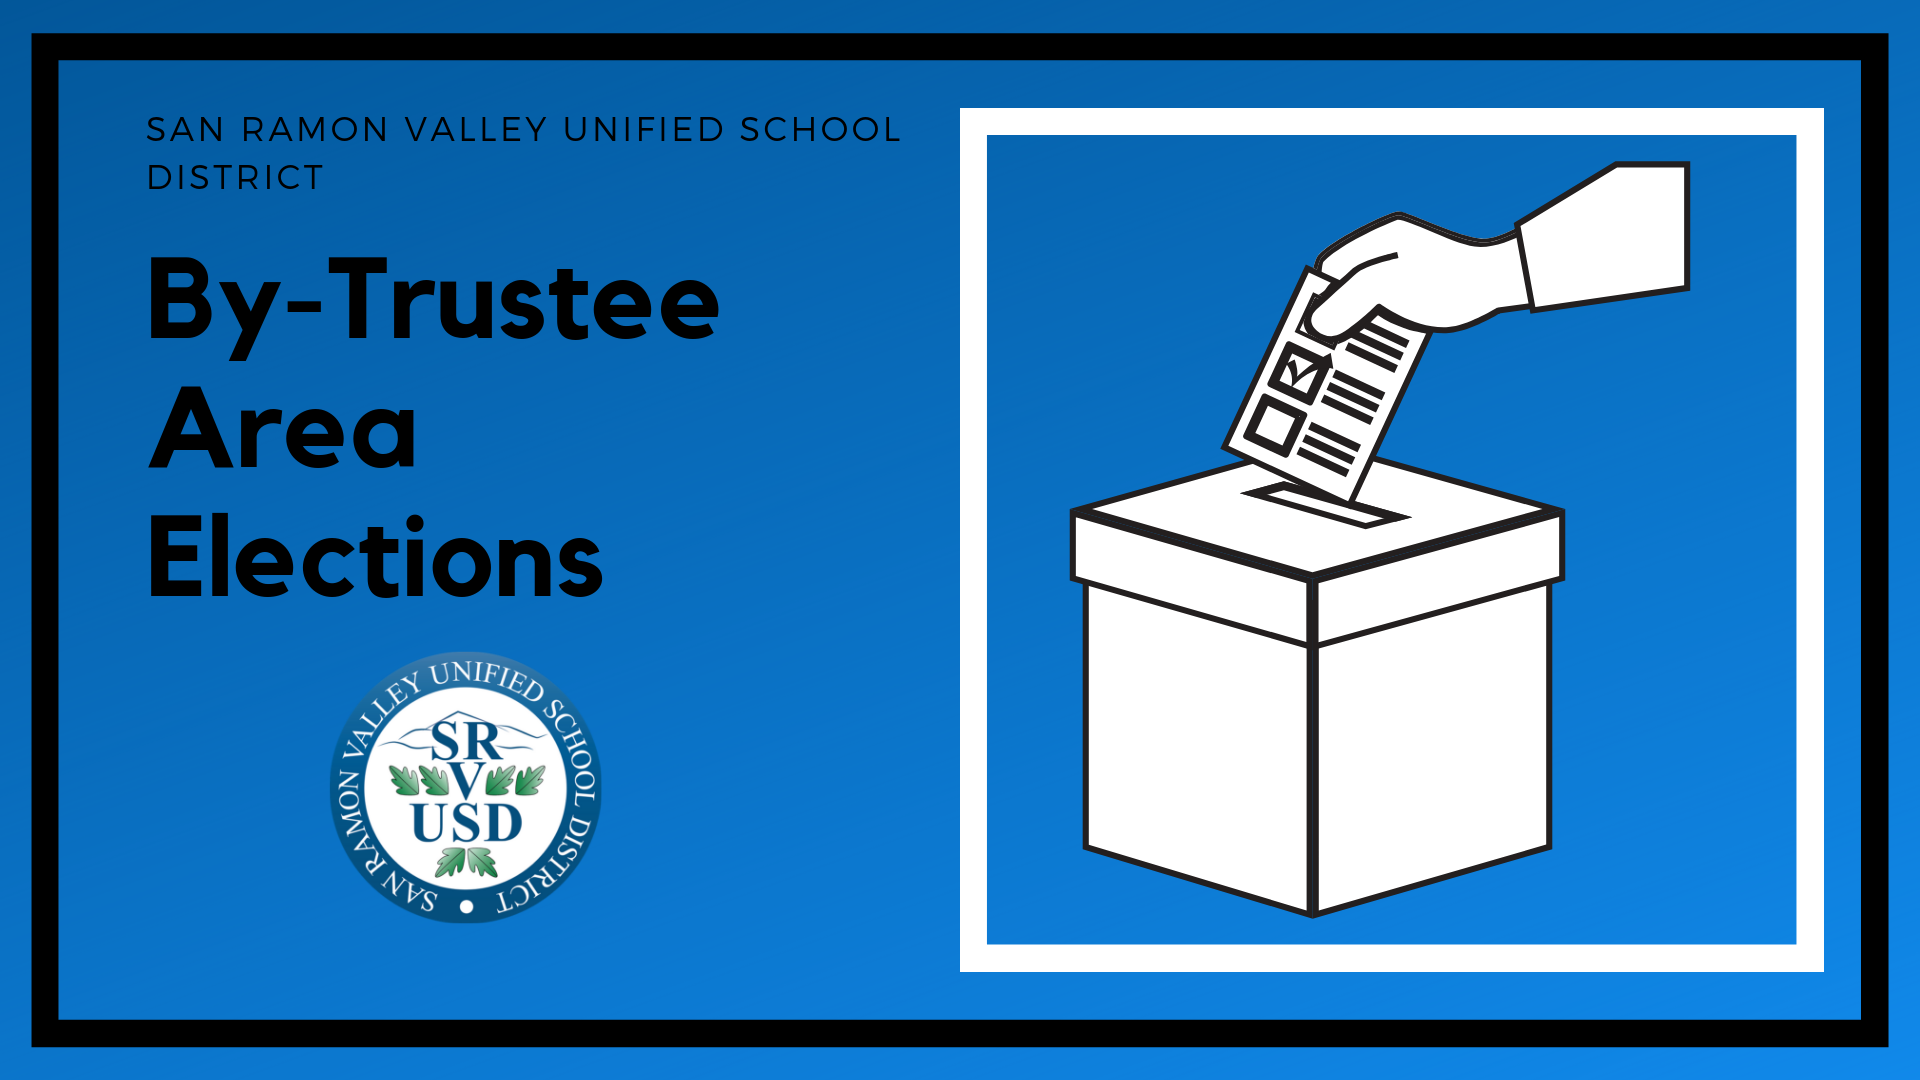 By-Trustee Area Elections